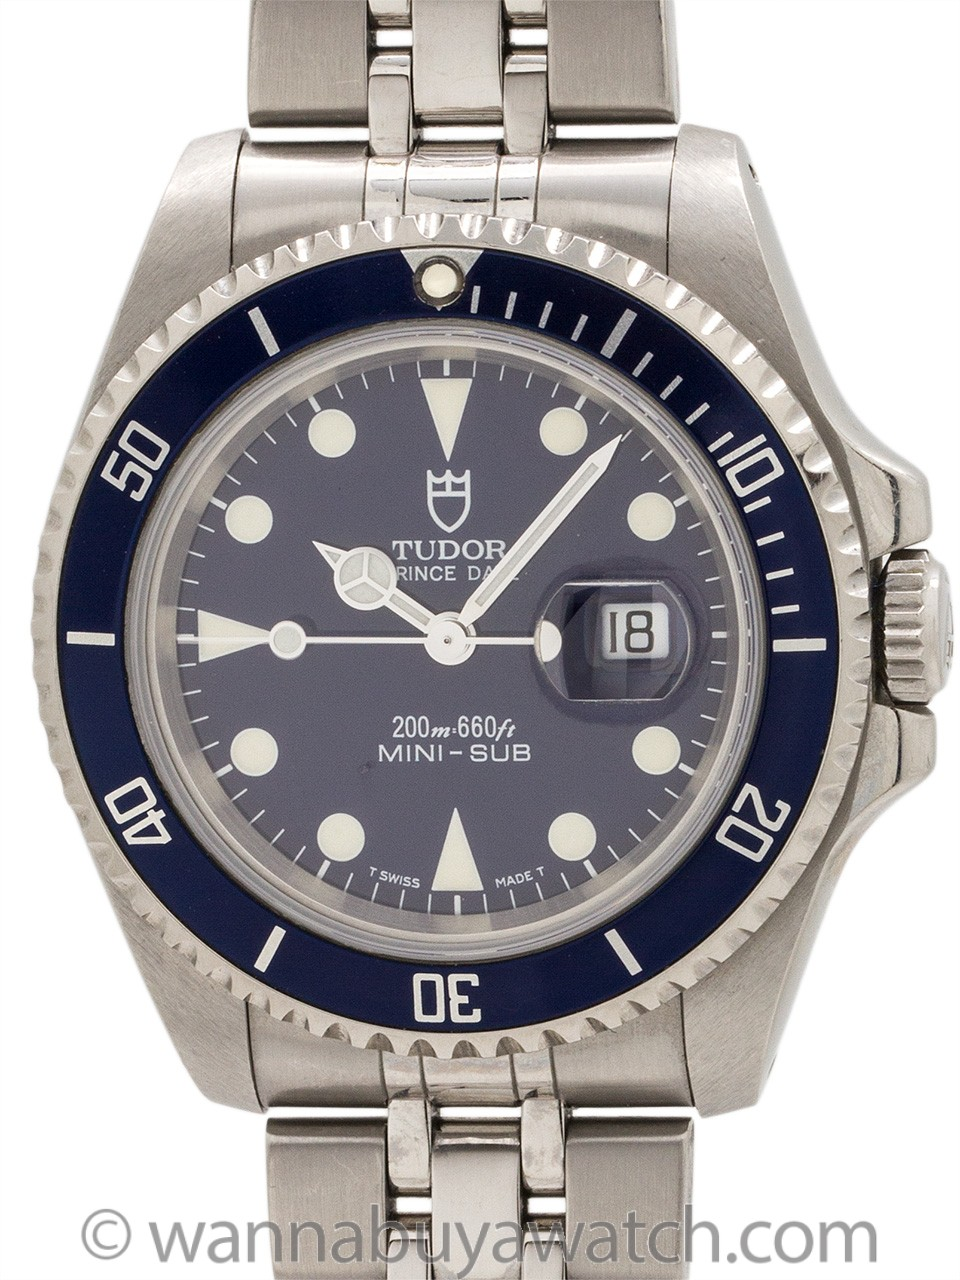 Tudor Stainless Steel Mini-Sub ref 73190 circa 1998